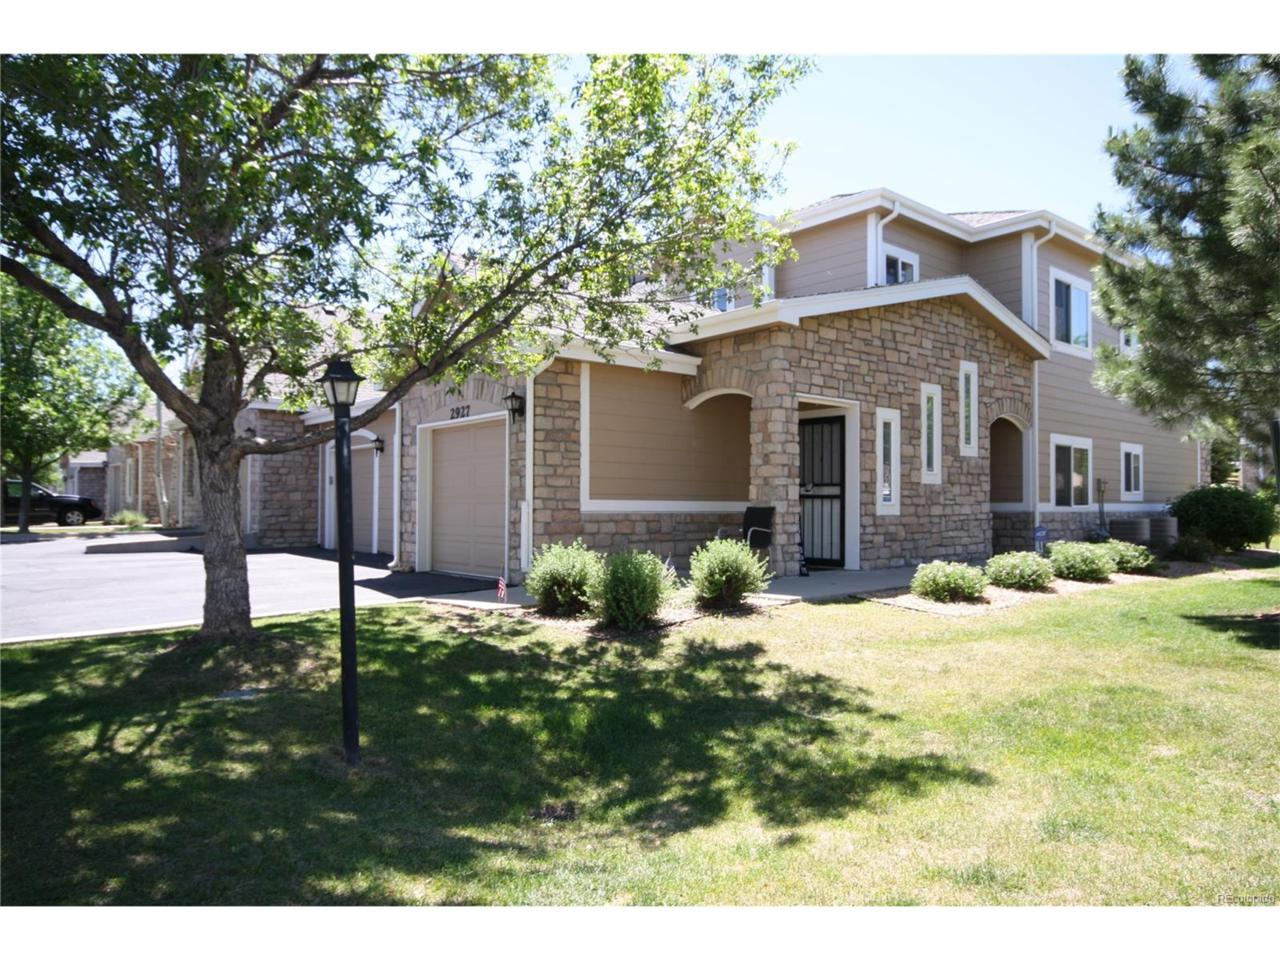 2927 W 119th Avenue #204, Westminster, CO 80234 (MLS #9165128) :: 8z Real Estate